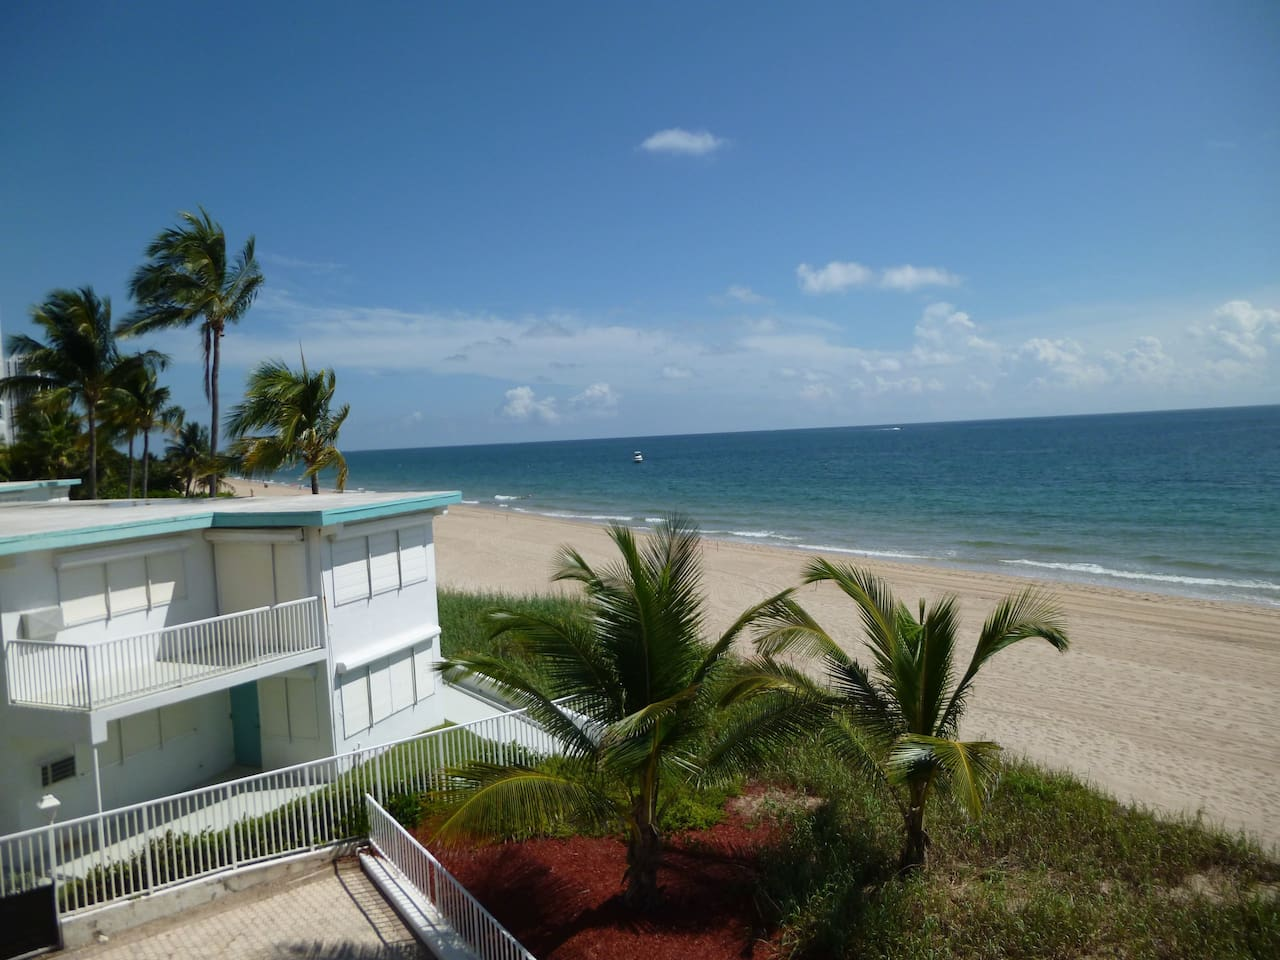 oceanview from the balcony